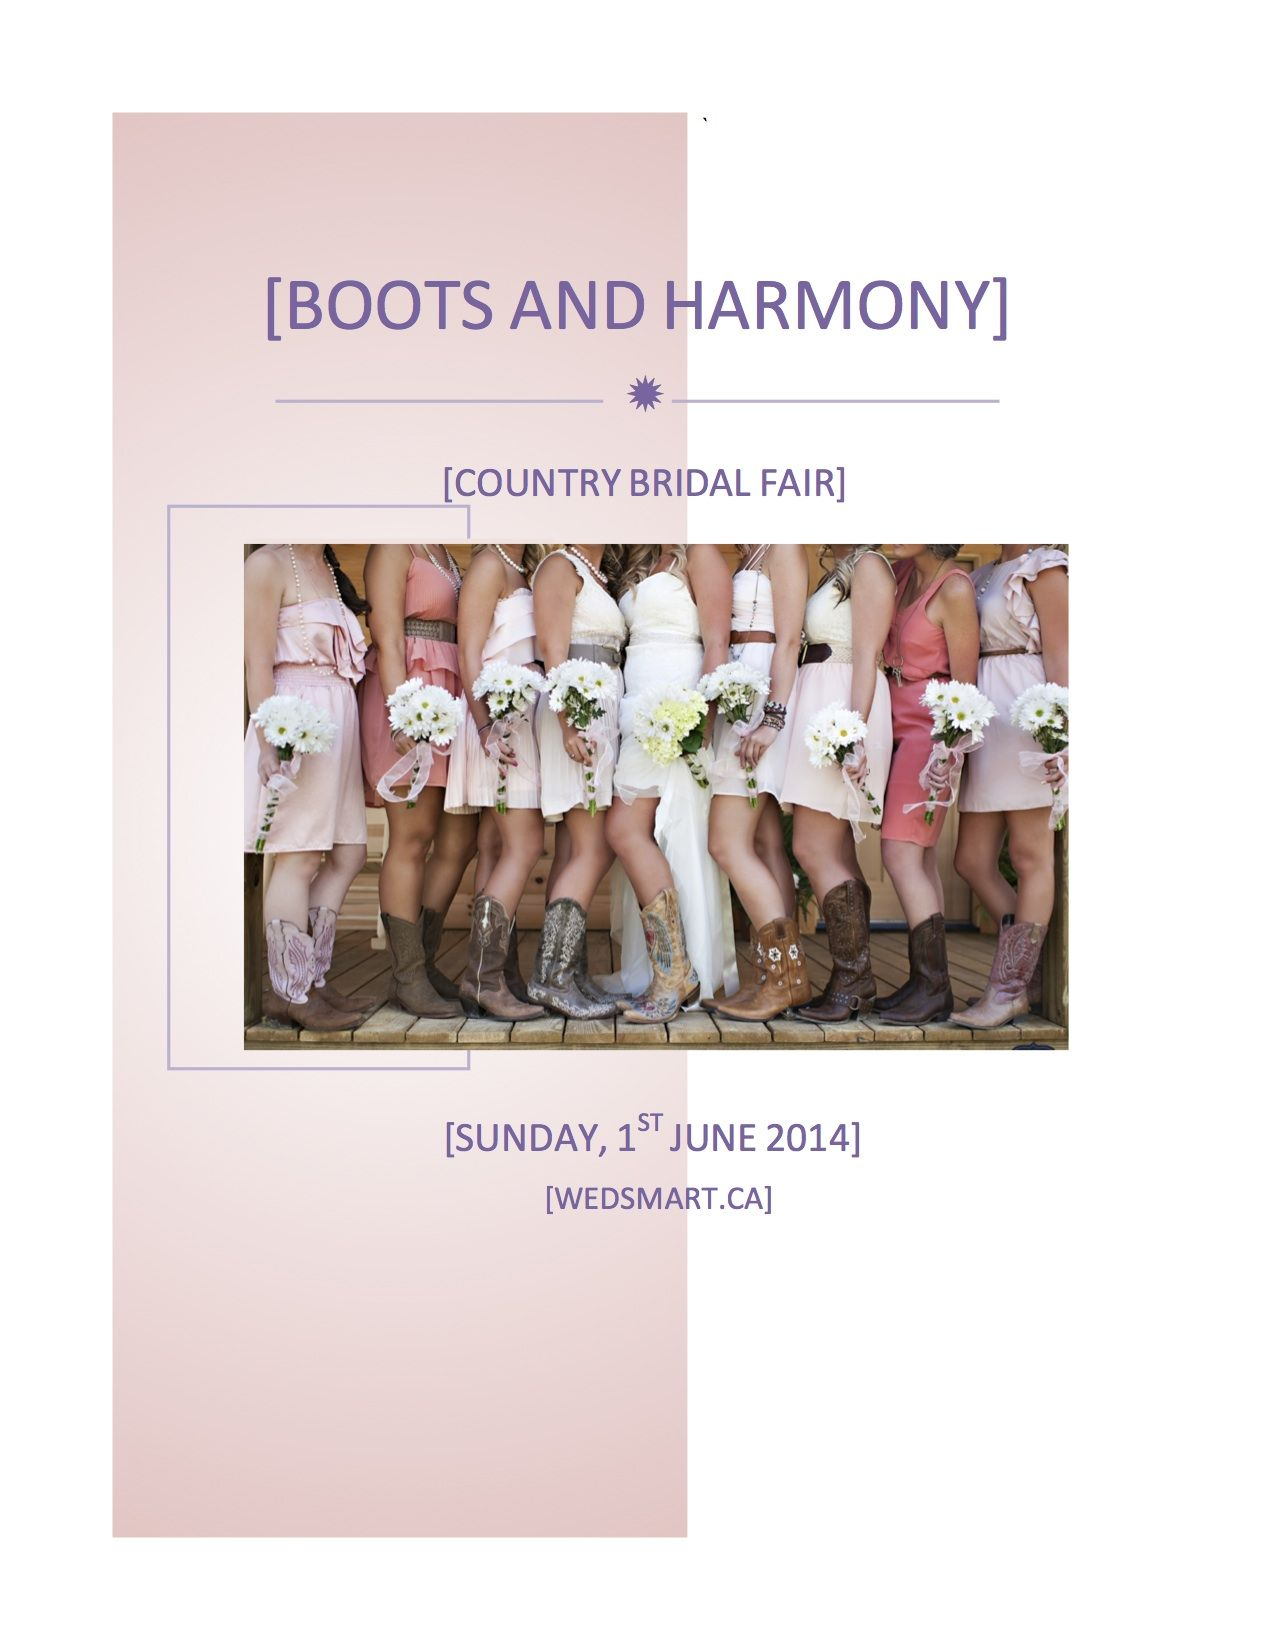 Boots and Harmony, bridal fair, 1st June 2014, Country Heritage Park, Milton, Ontario visit http://www.bootsandharmony.ca/ for tickets and information